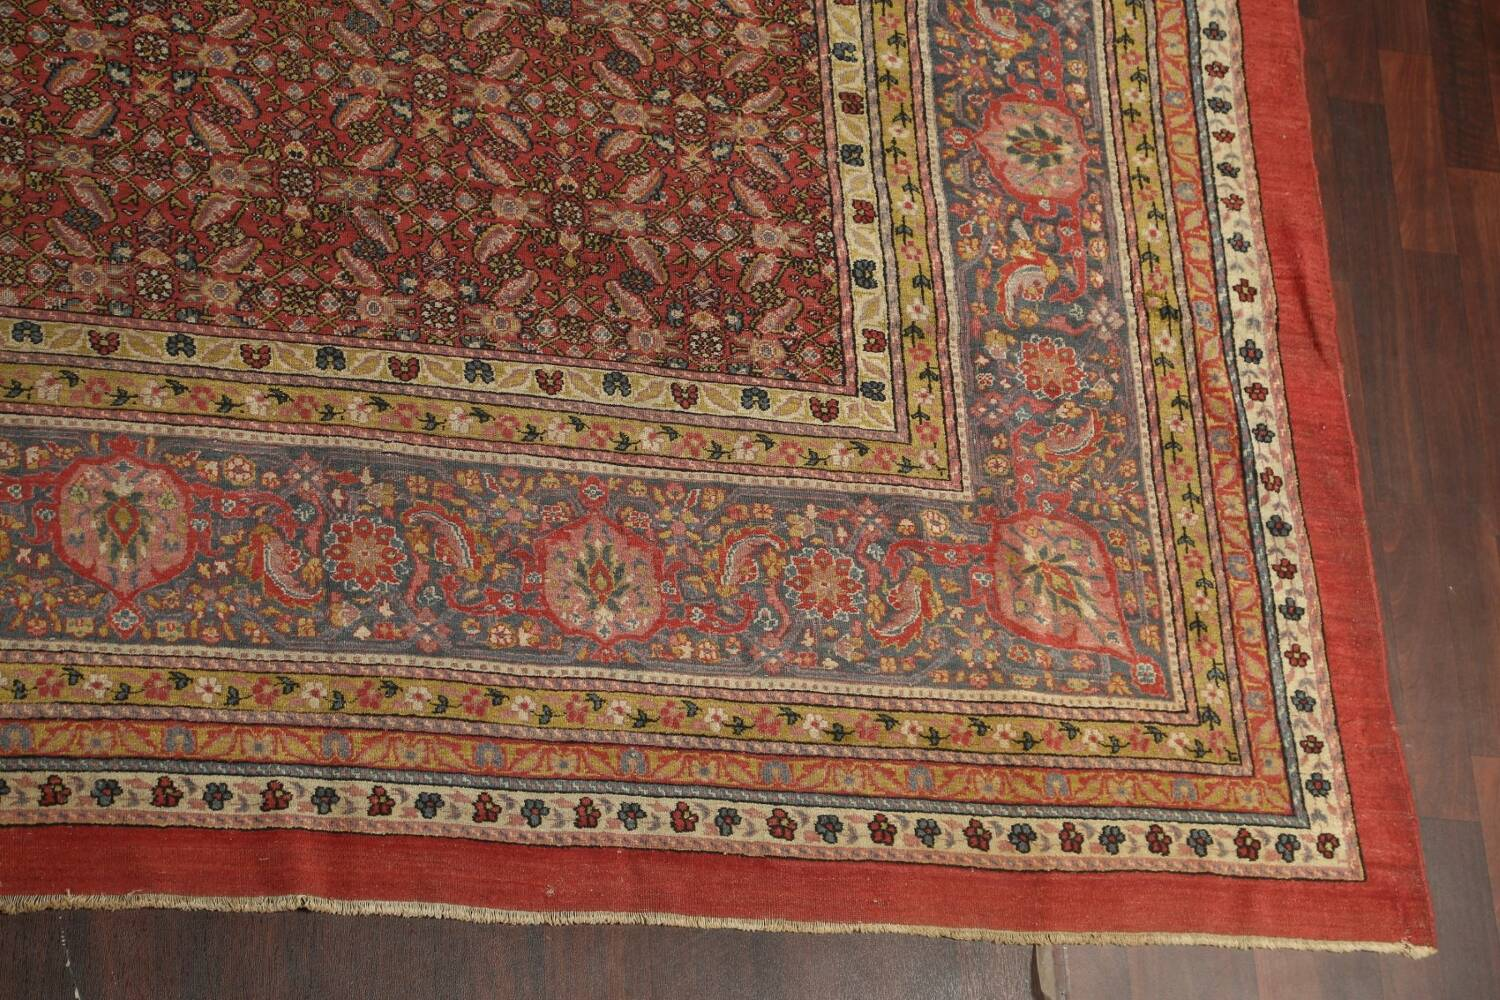 Antique Vegetable Dye Sultanabad Persian Rug 13x20 image 6